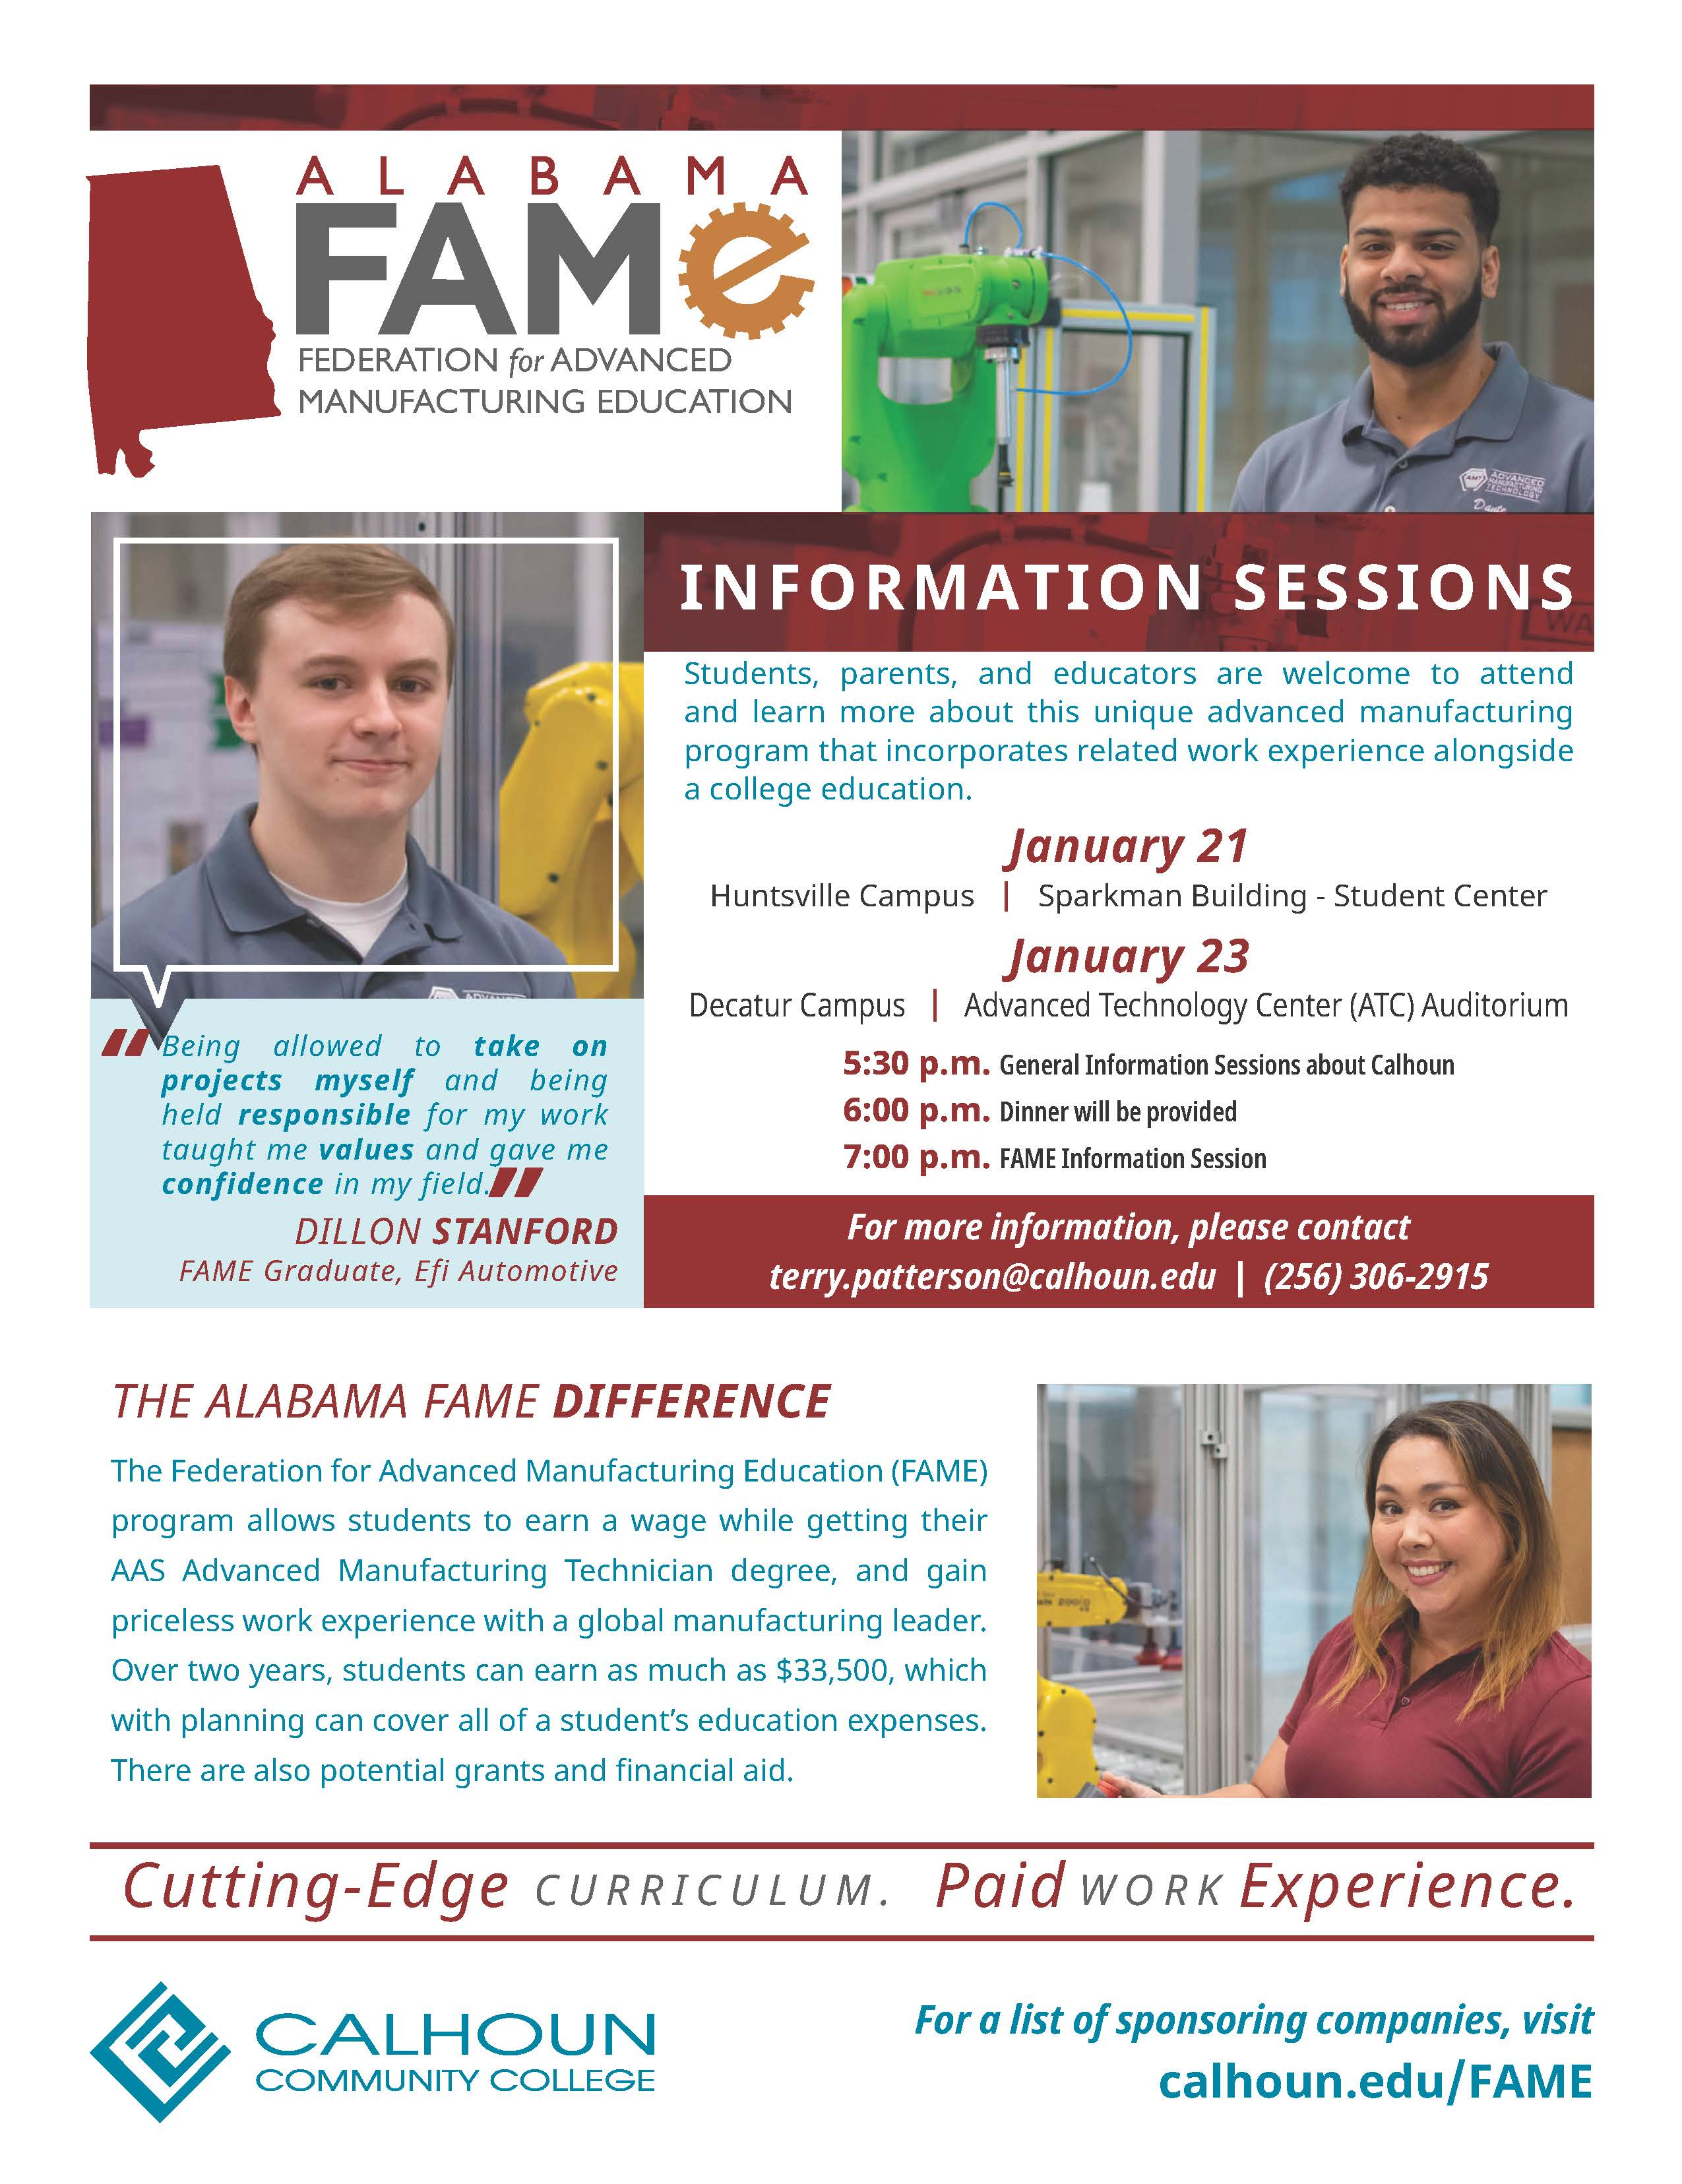 FAME january 2020 info sessions flyer